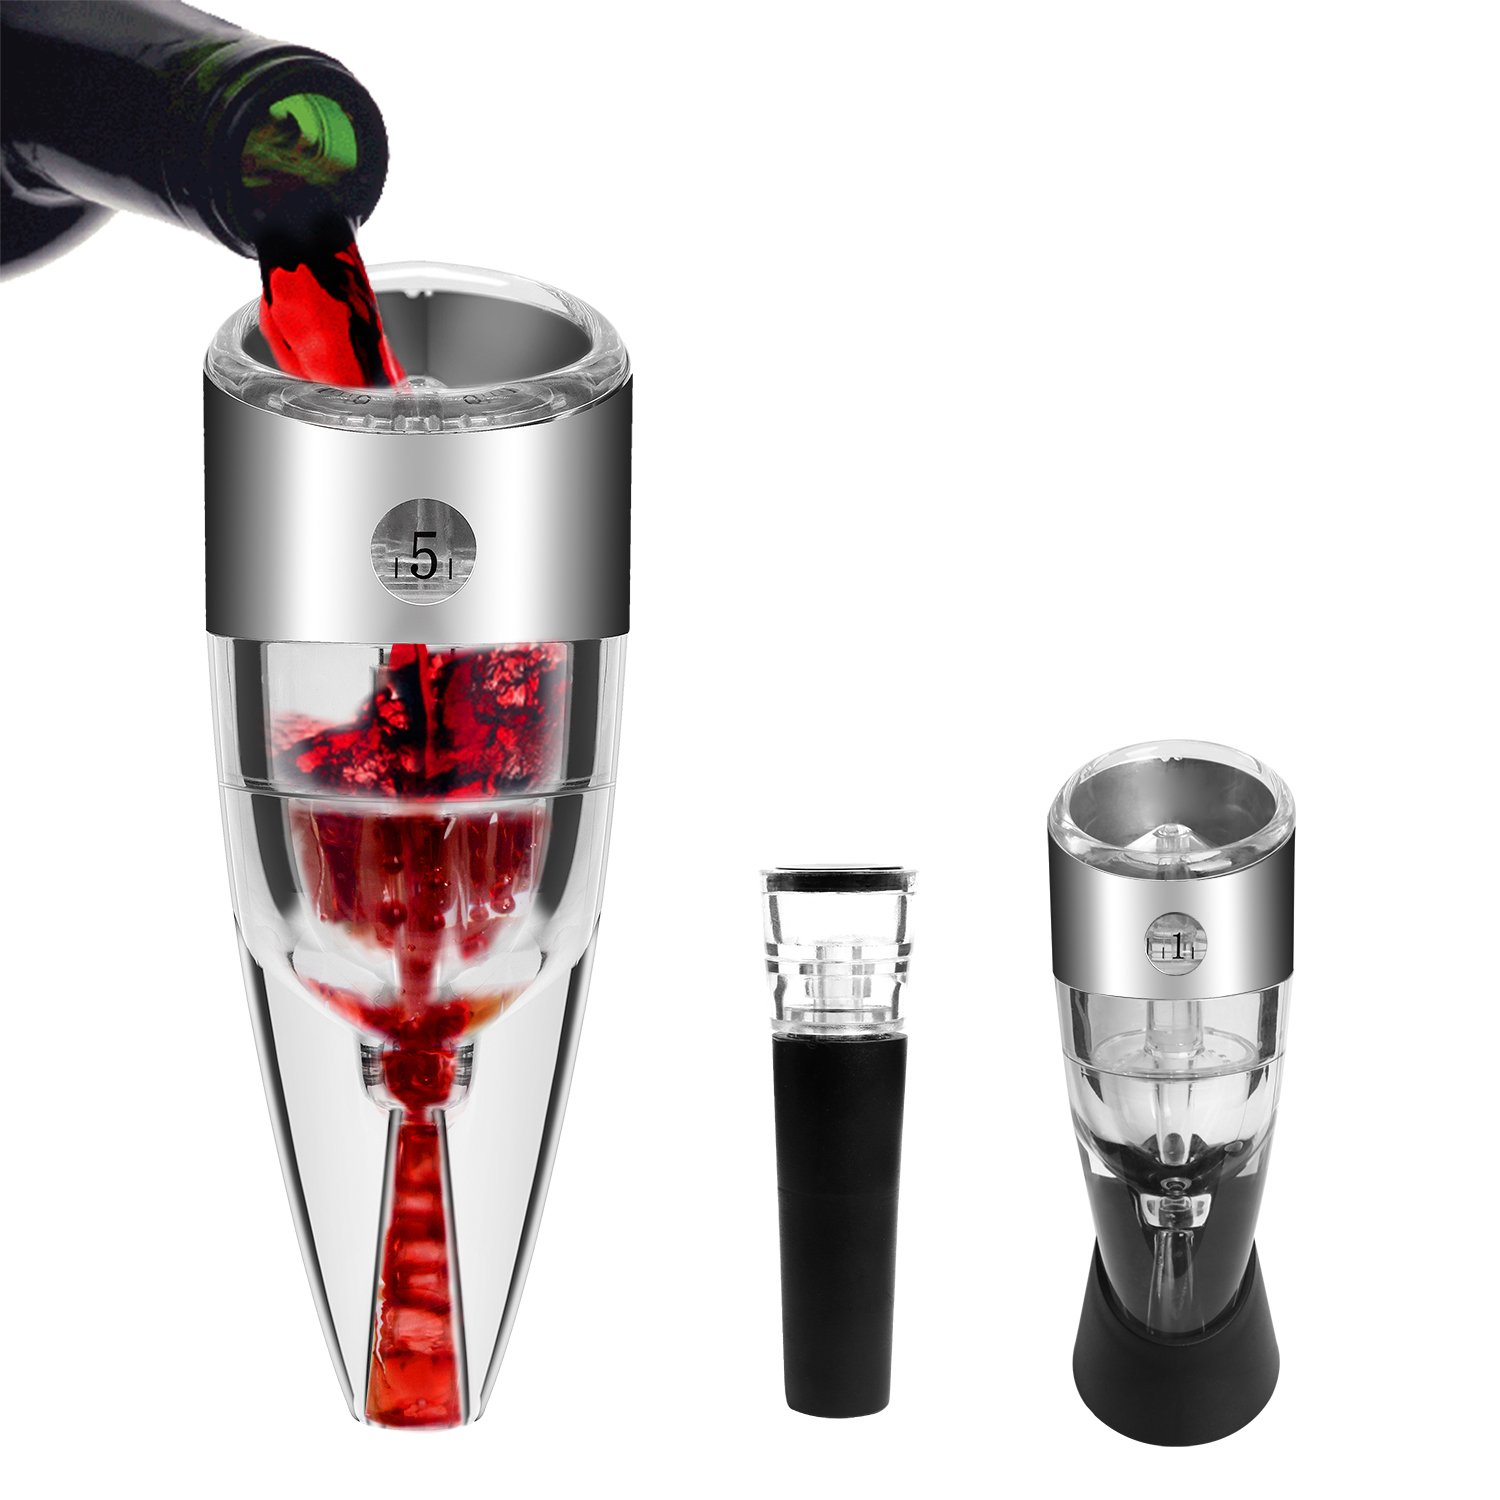 Wine Aerator Decanter - Empino Premium Instant Aerating Pourer - Wine Filters for Sulfites - Multi-Stage Design Wine Saver Diffuser with Vacuum Wine Stopper and Carry Pouch Included HX022A